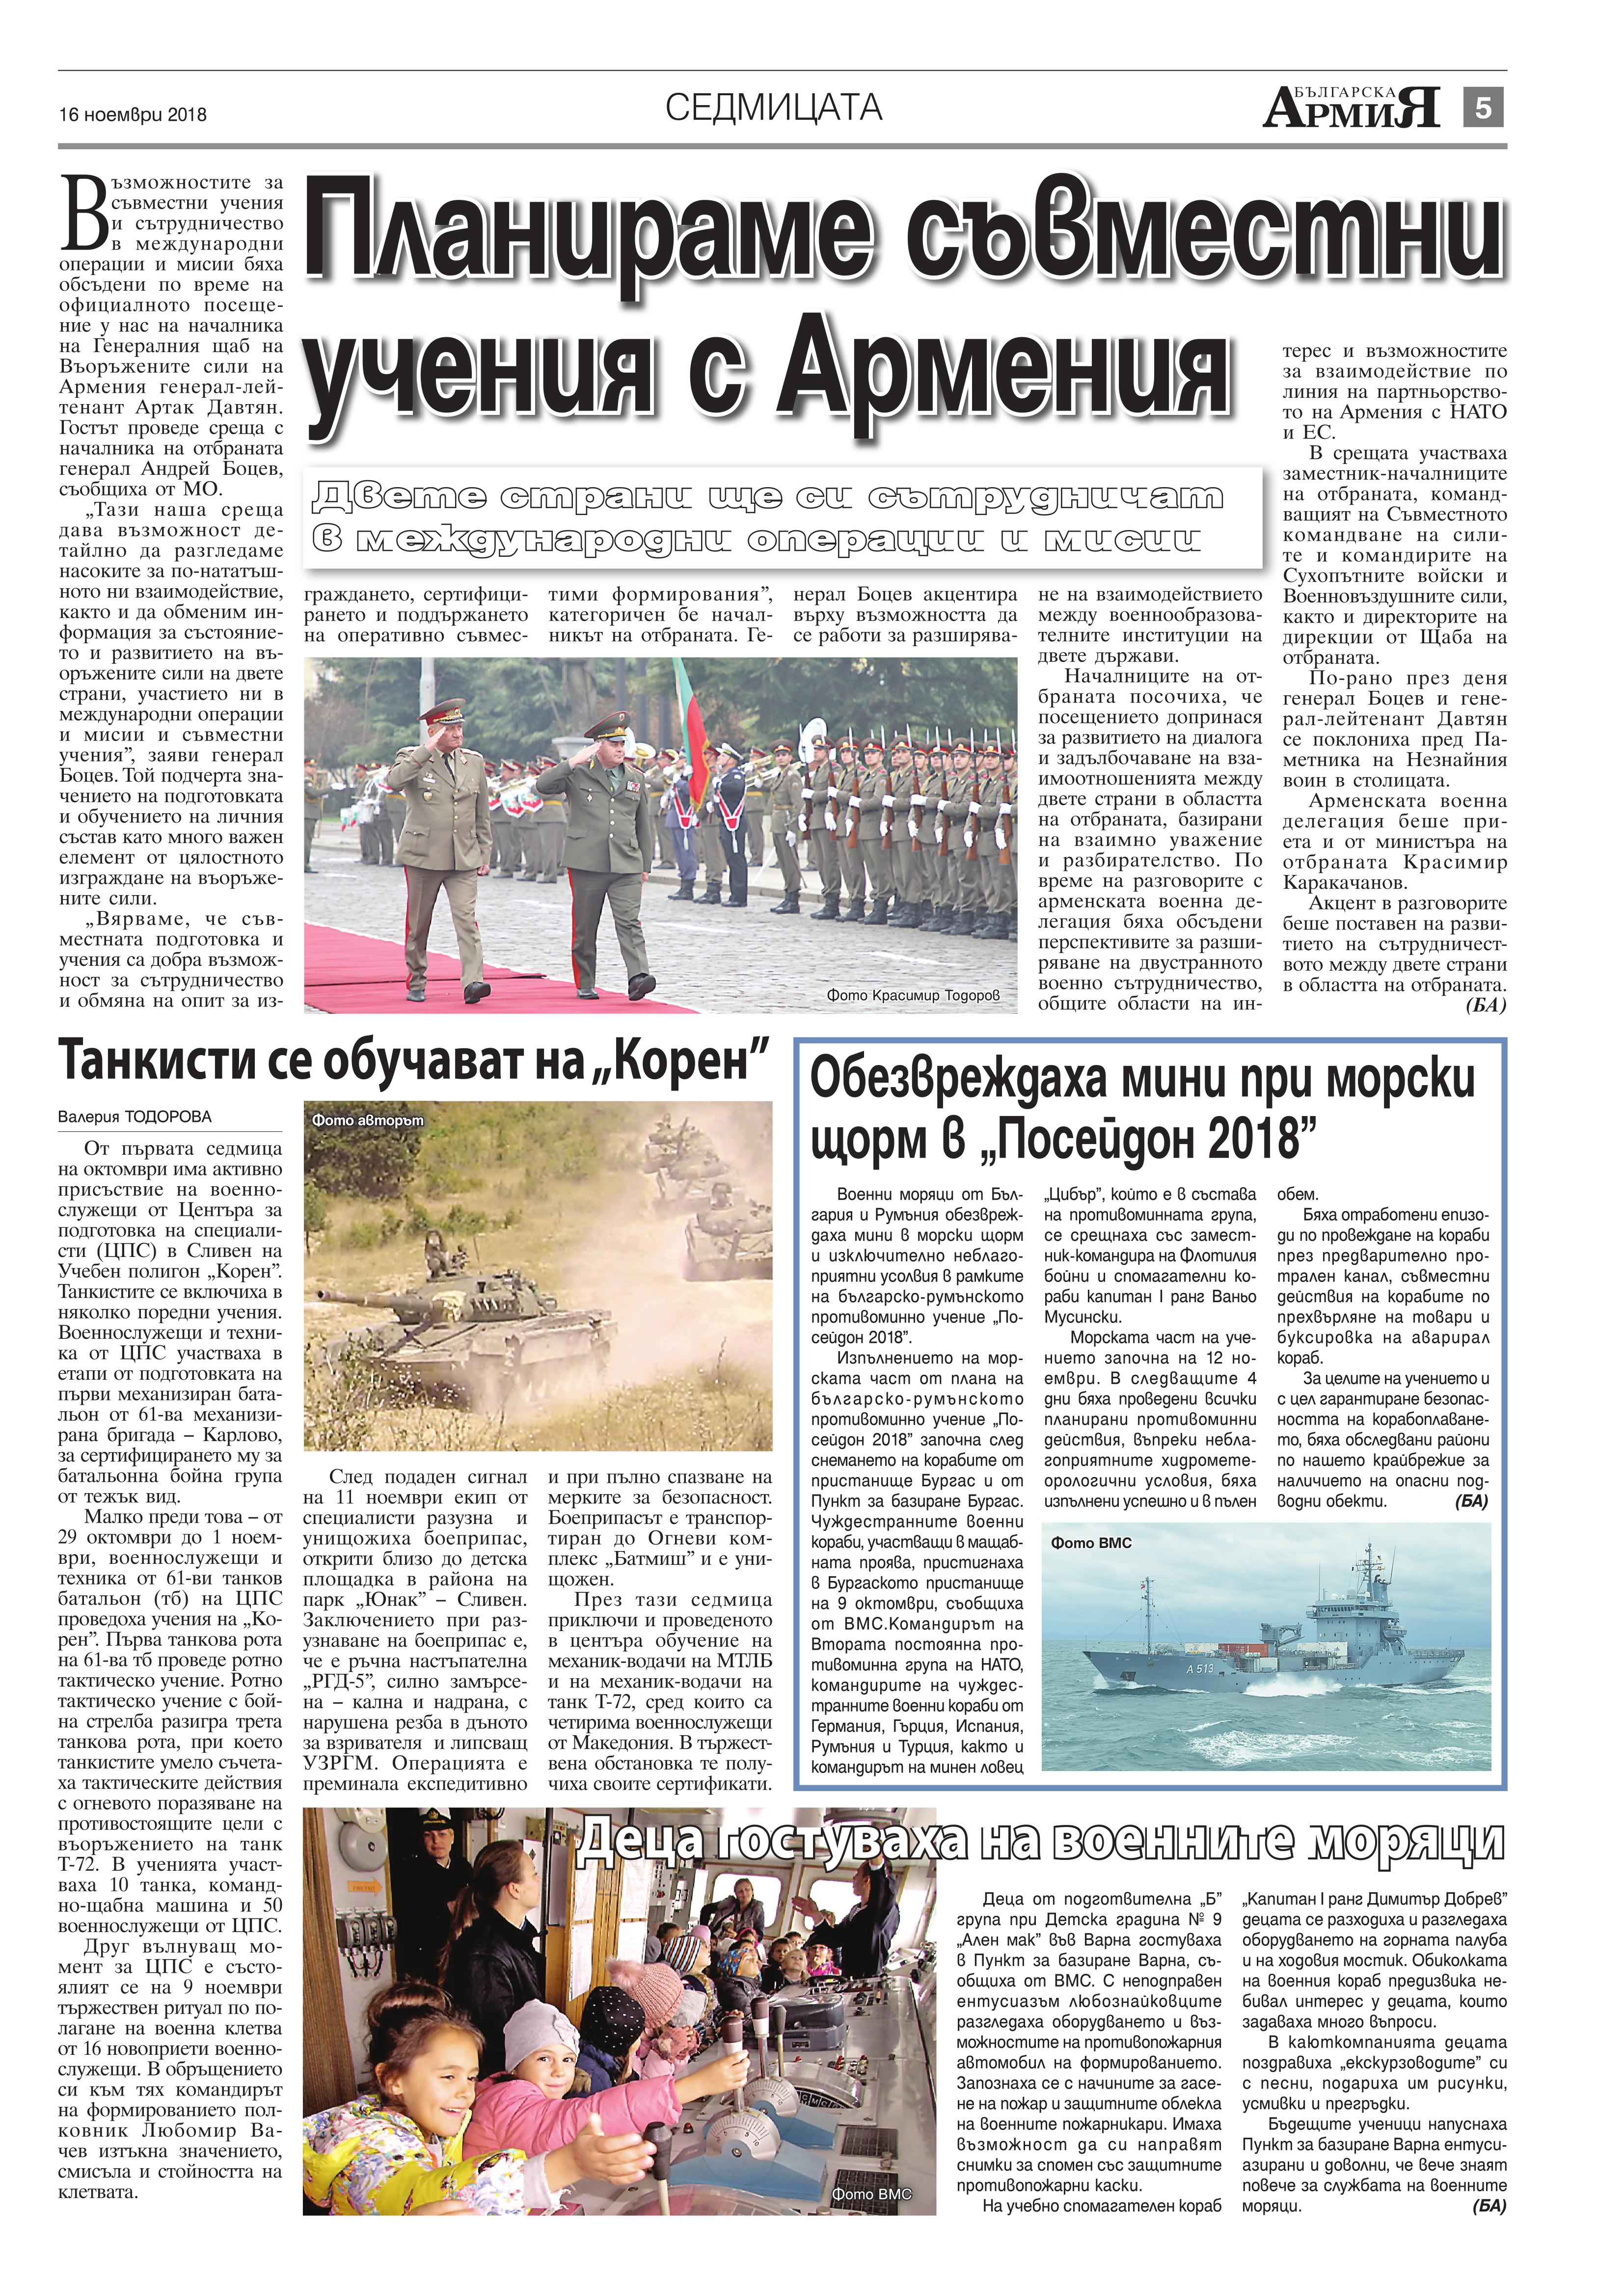 https://armymedia.bg/wp-content/uploads/2015/06/05.page1_-70.jpg